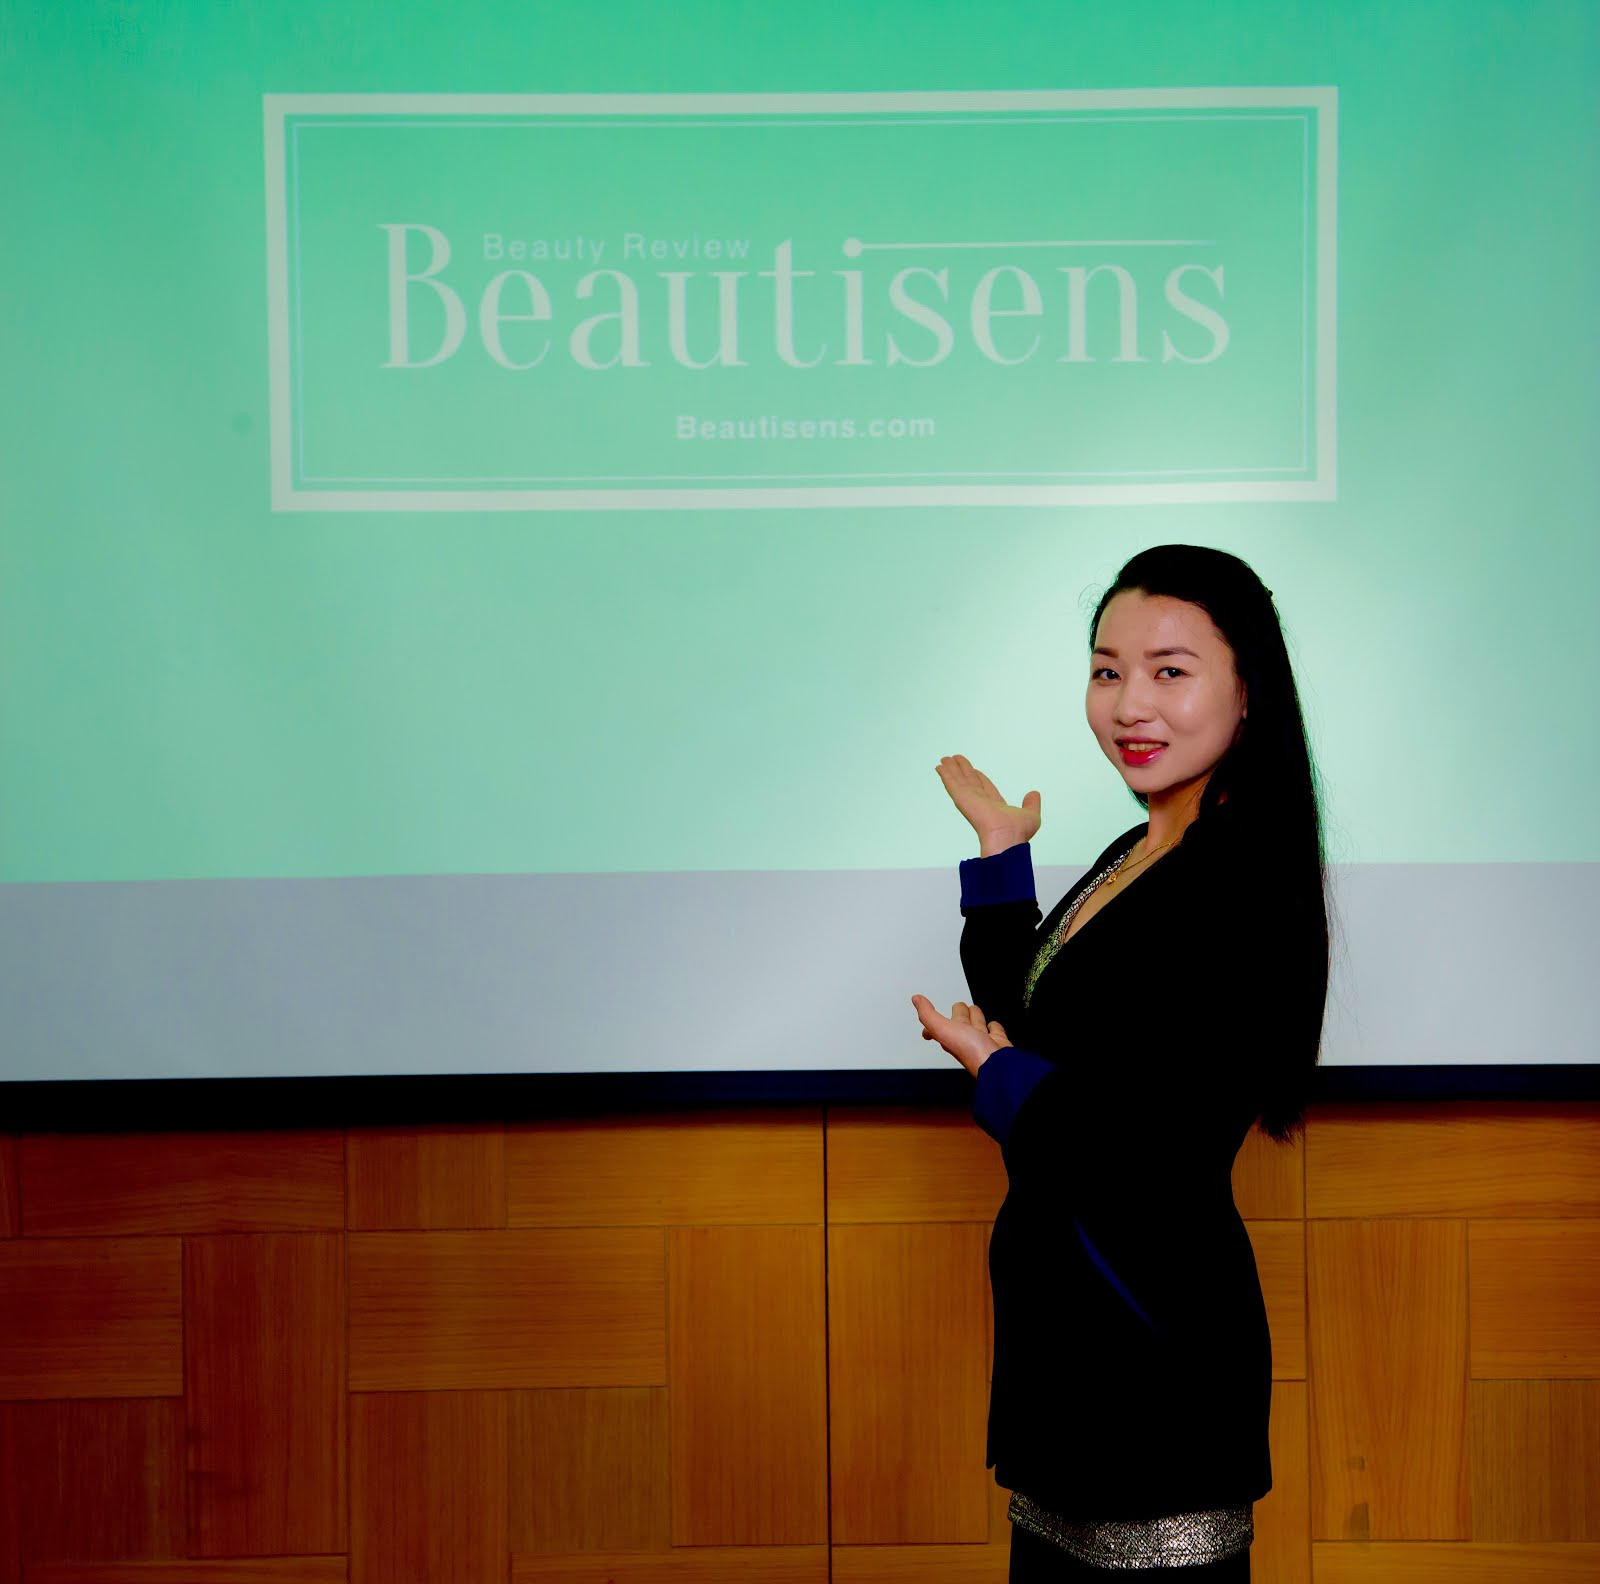 BEAUISENS REVIEW: TOP BEAUTY REVIEW